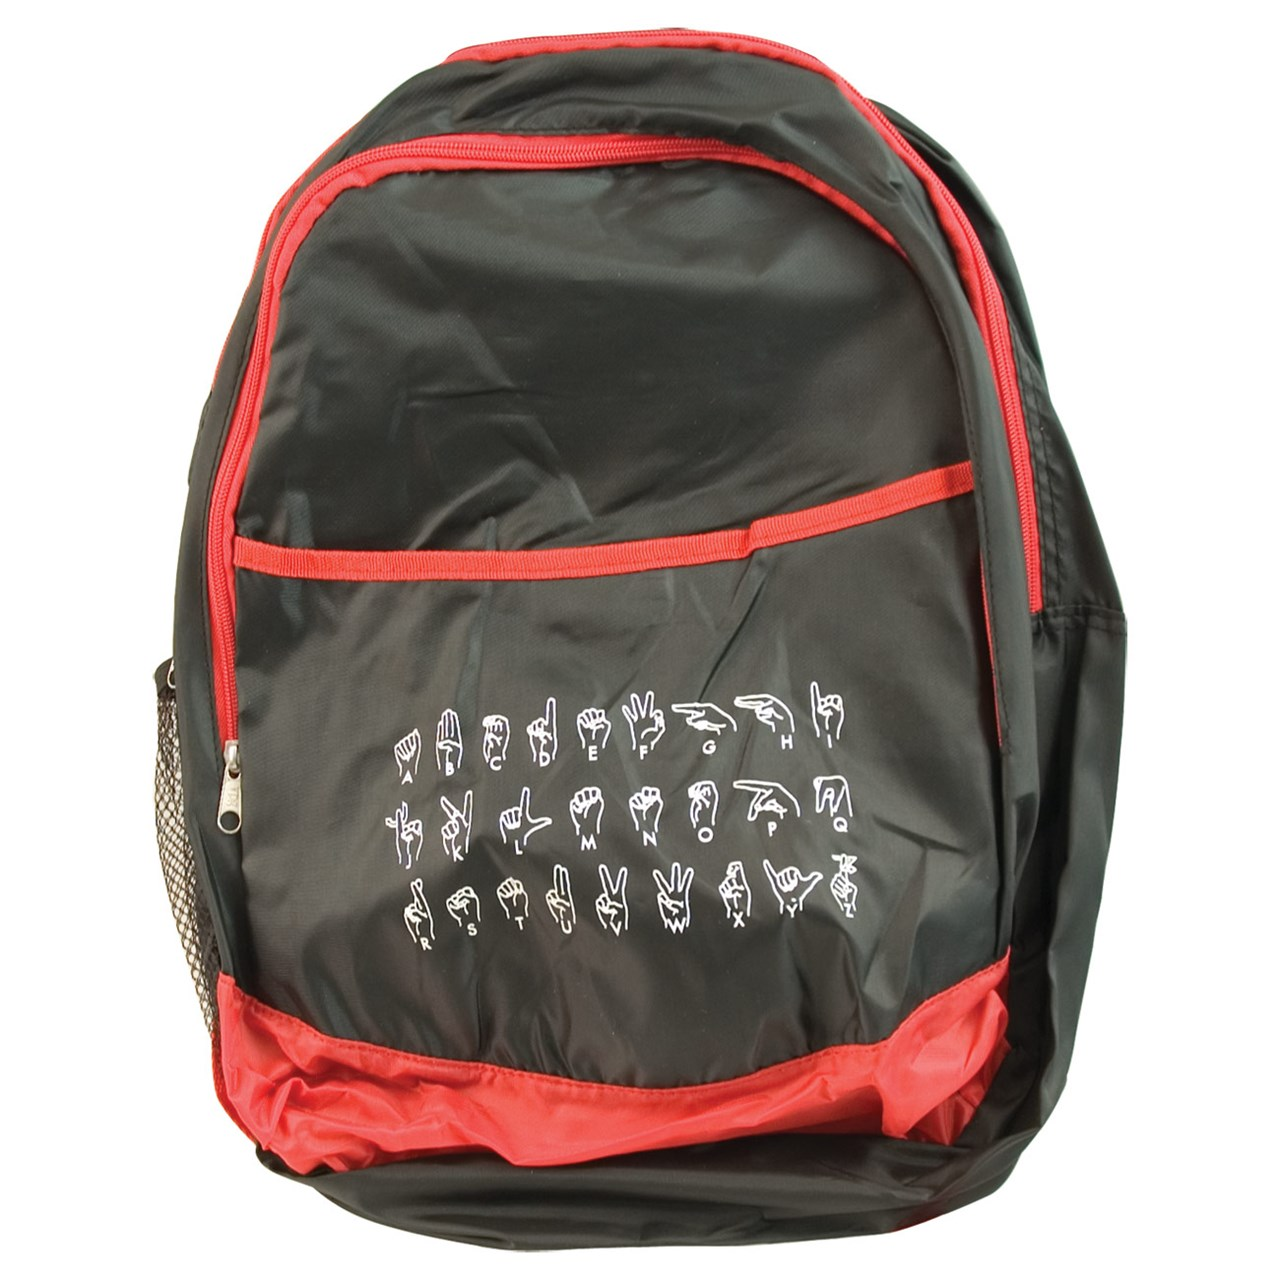 Sign Language ABC Backpack - Black with Red Trim